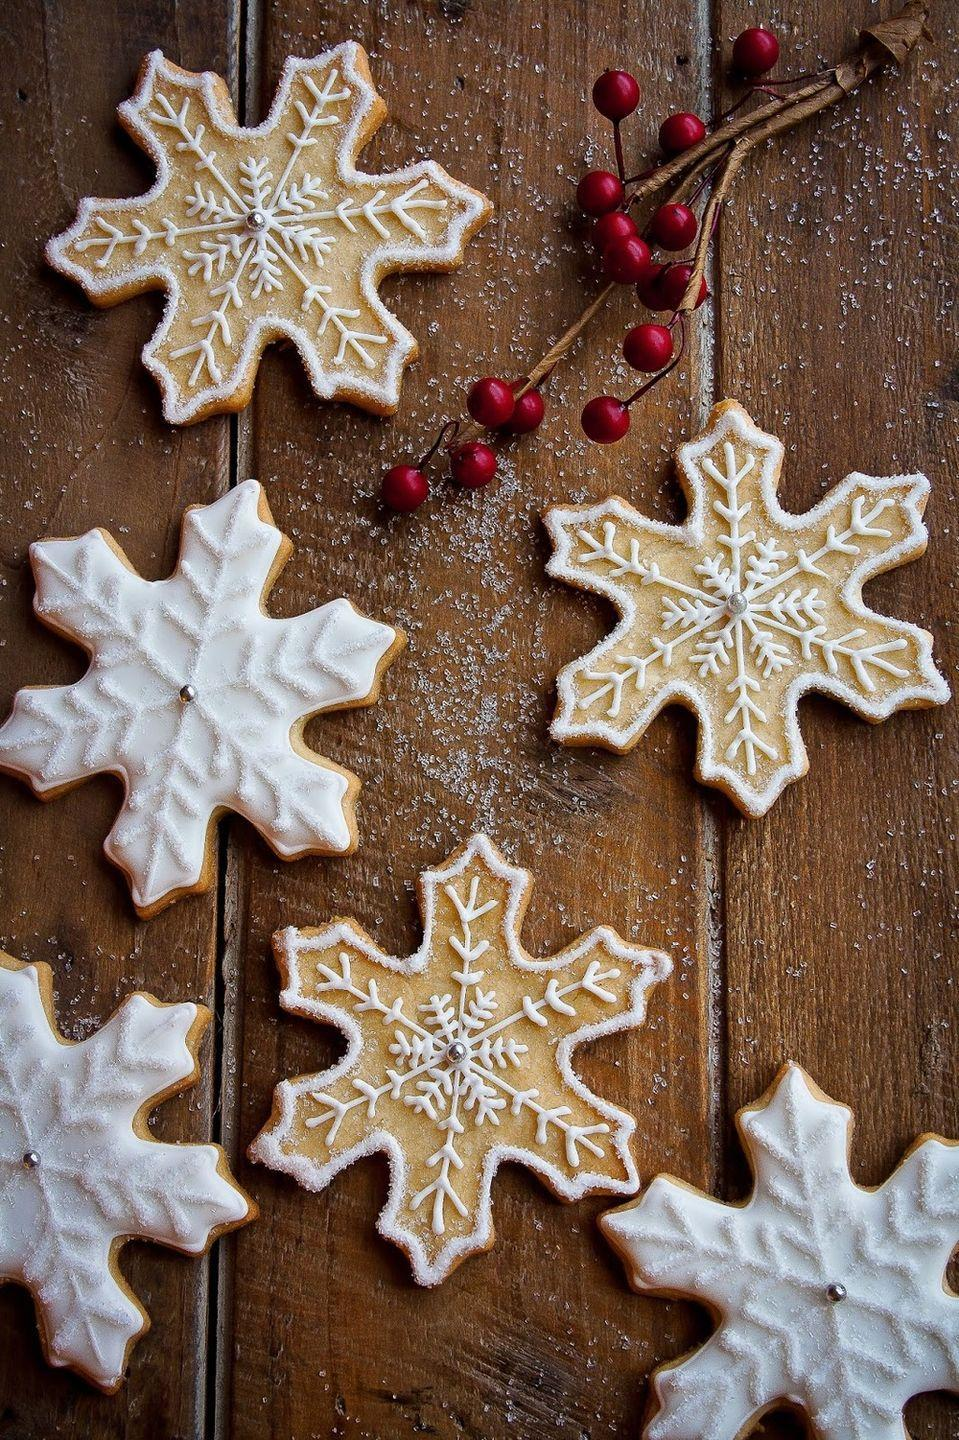 "<p>These delicately decorated snowflakes will wow everyone at your holiday cookie exchange.</p><p><strong>Get the recipe at <a href=""http://www.hintofvanillablog.com/home/2013/12/snowflake-sugar-cookies.html"" rel=""nofollow noopener"" target=""_blank"" data-ylk=""slk:Hint of Vanilla"" class=""link rapid-noclick-resp"">Hint of Vanilla</a>.</strong></p><p><a class=""link rapid-noclick-resp"" href=""https://www.amazon.com/Hamilton-Beach-62682RZ-Mixer-Snap/dp/B001CH0ZLE?tag=syn-yahoo-20&ascsubtag=%5Bartid%7C10050.g.2777%5Bsrc%7Cyahoo-us"" rel=""nofollow noopener"" target=""_blank"" data-ylk=""slk:SHOP HAND MIXERS"">SHOP HAND MIXERS</a></p>"